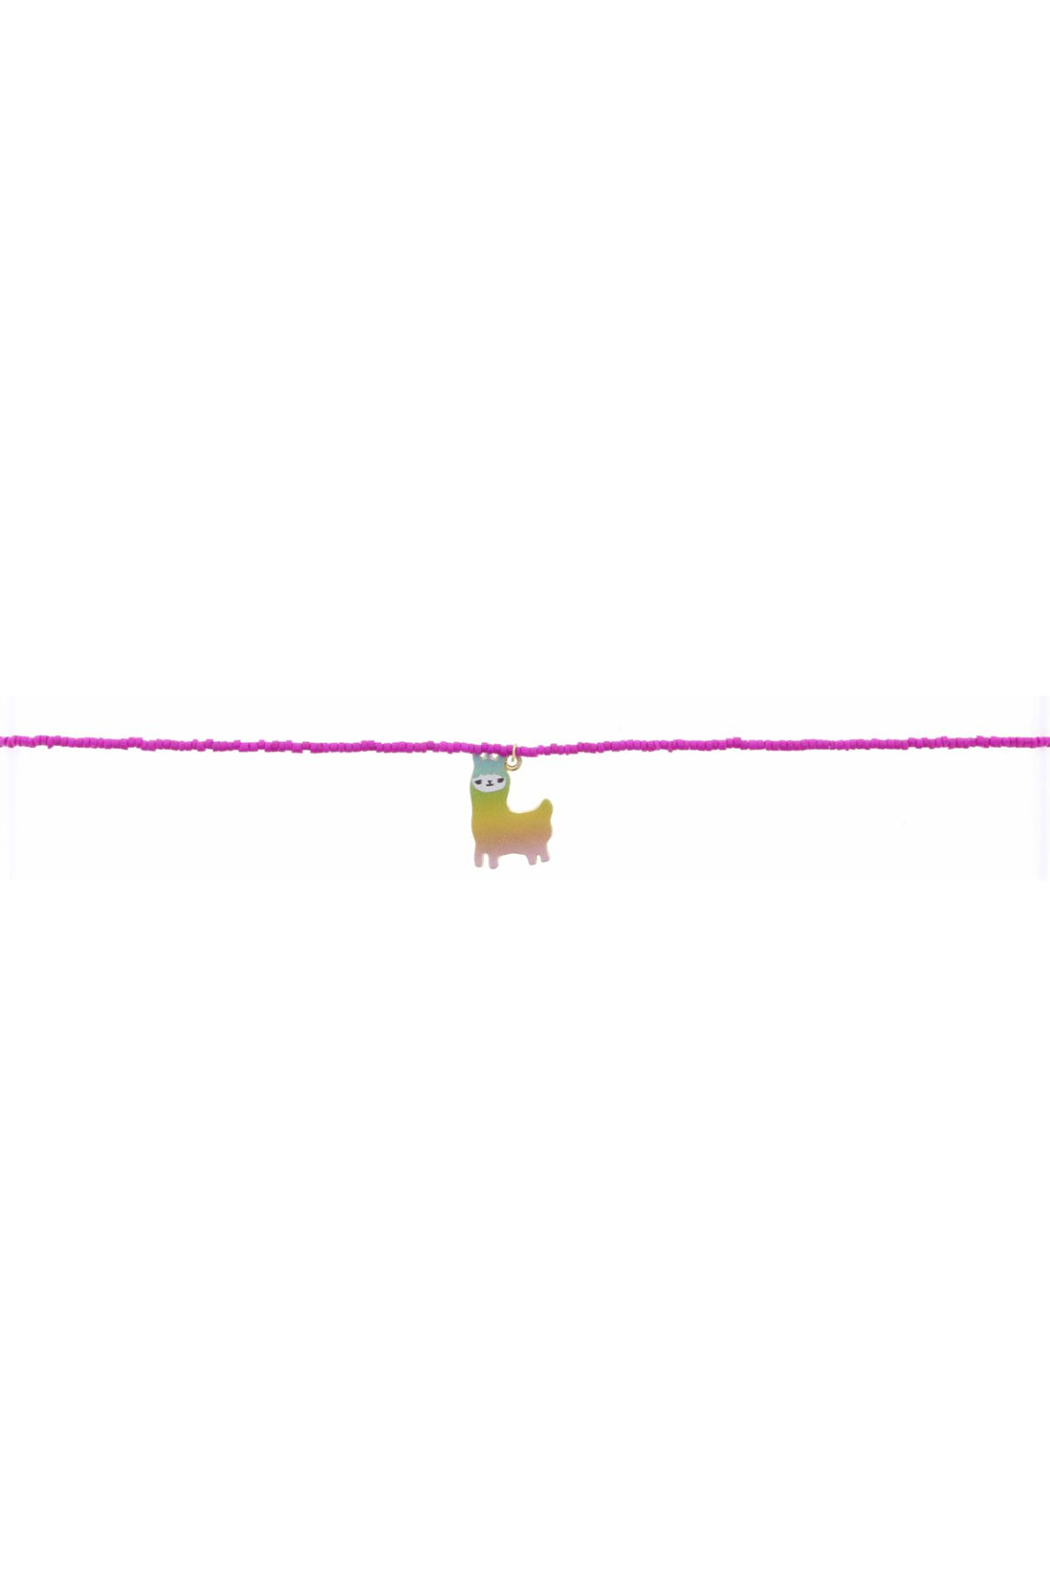 Jane Marie Seed Bead Necklace - Hot Pink With Llama Charm - Main Image